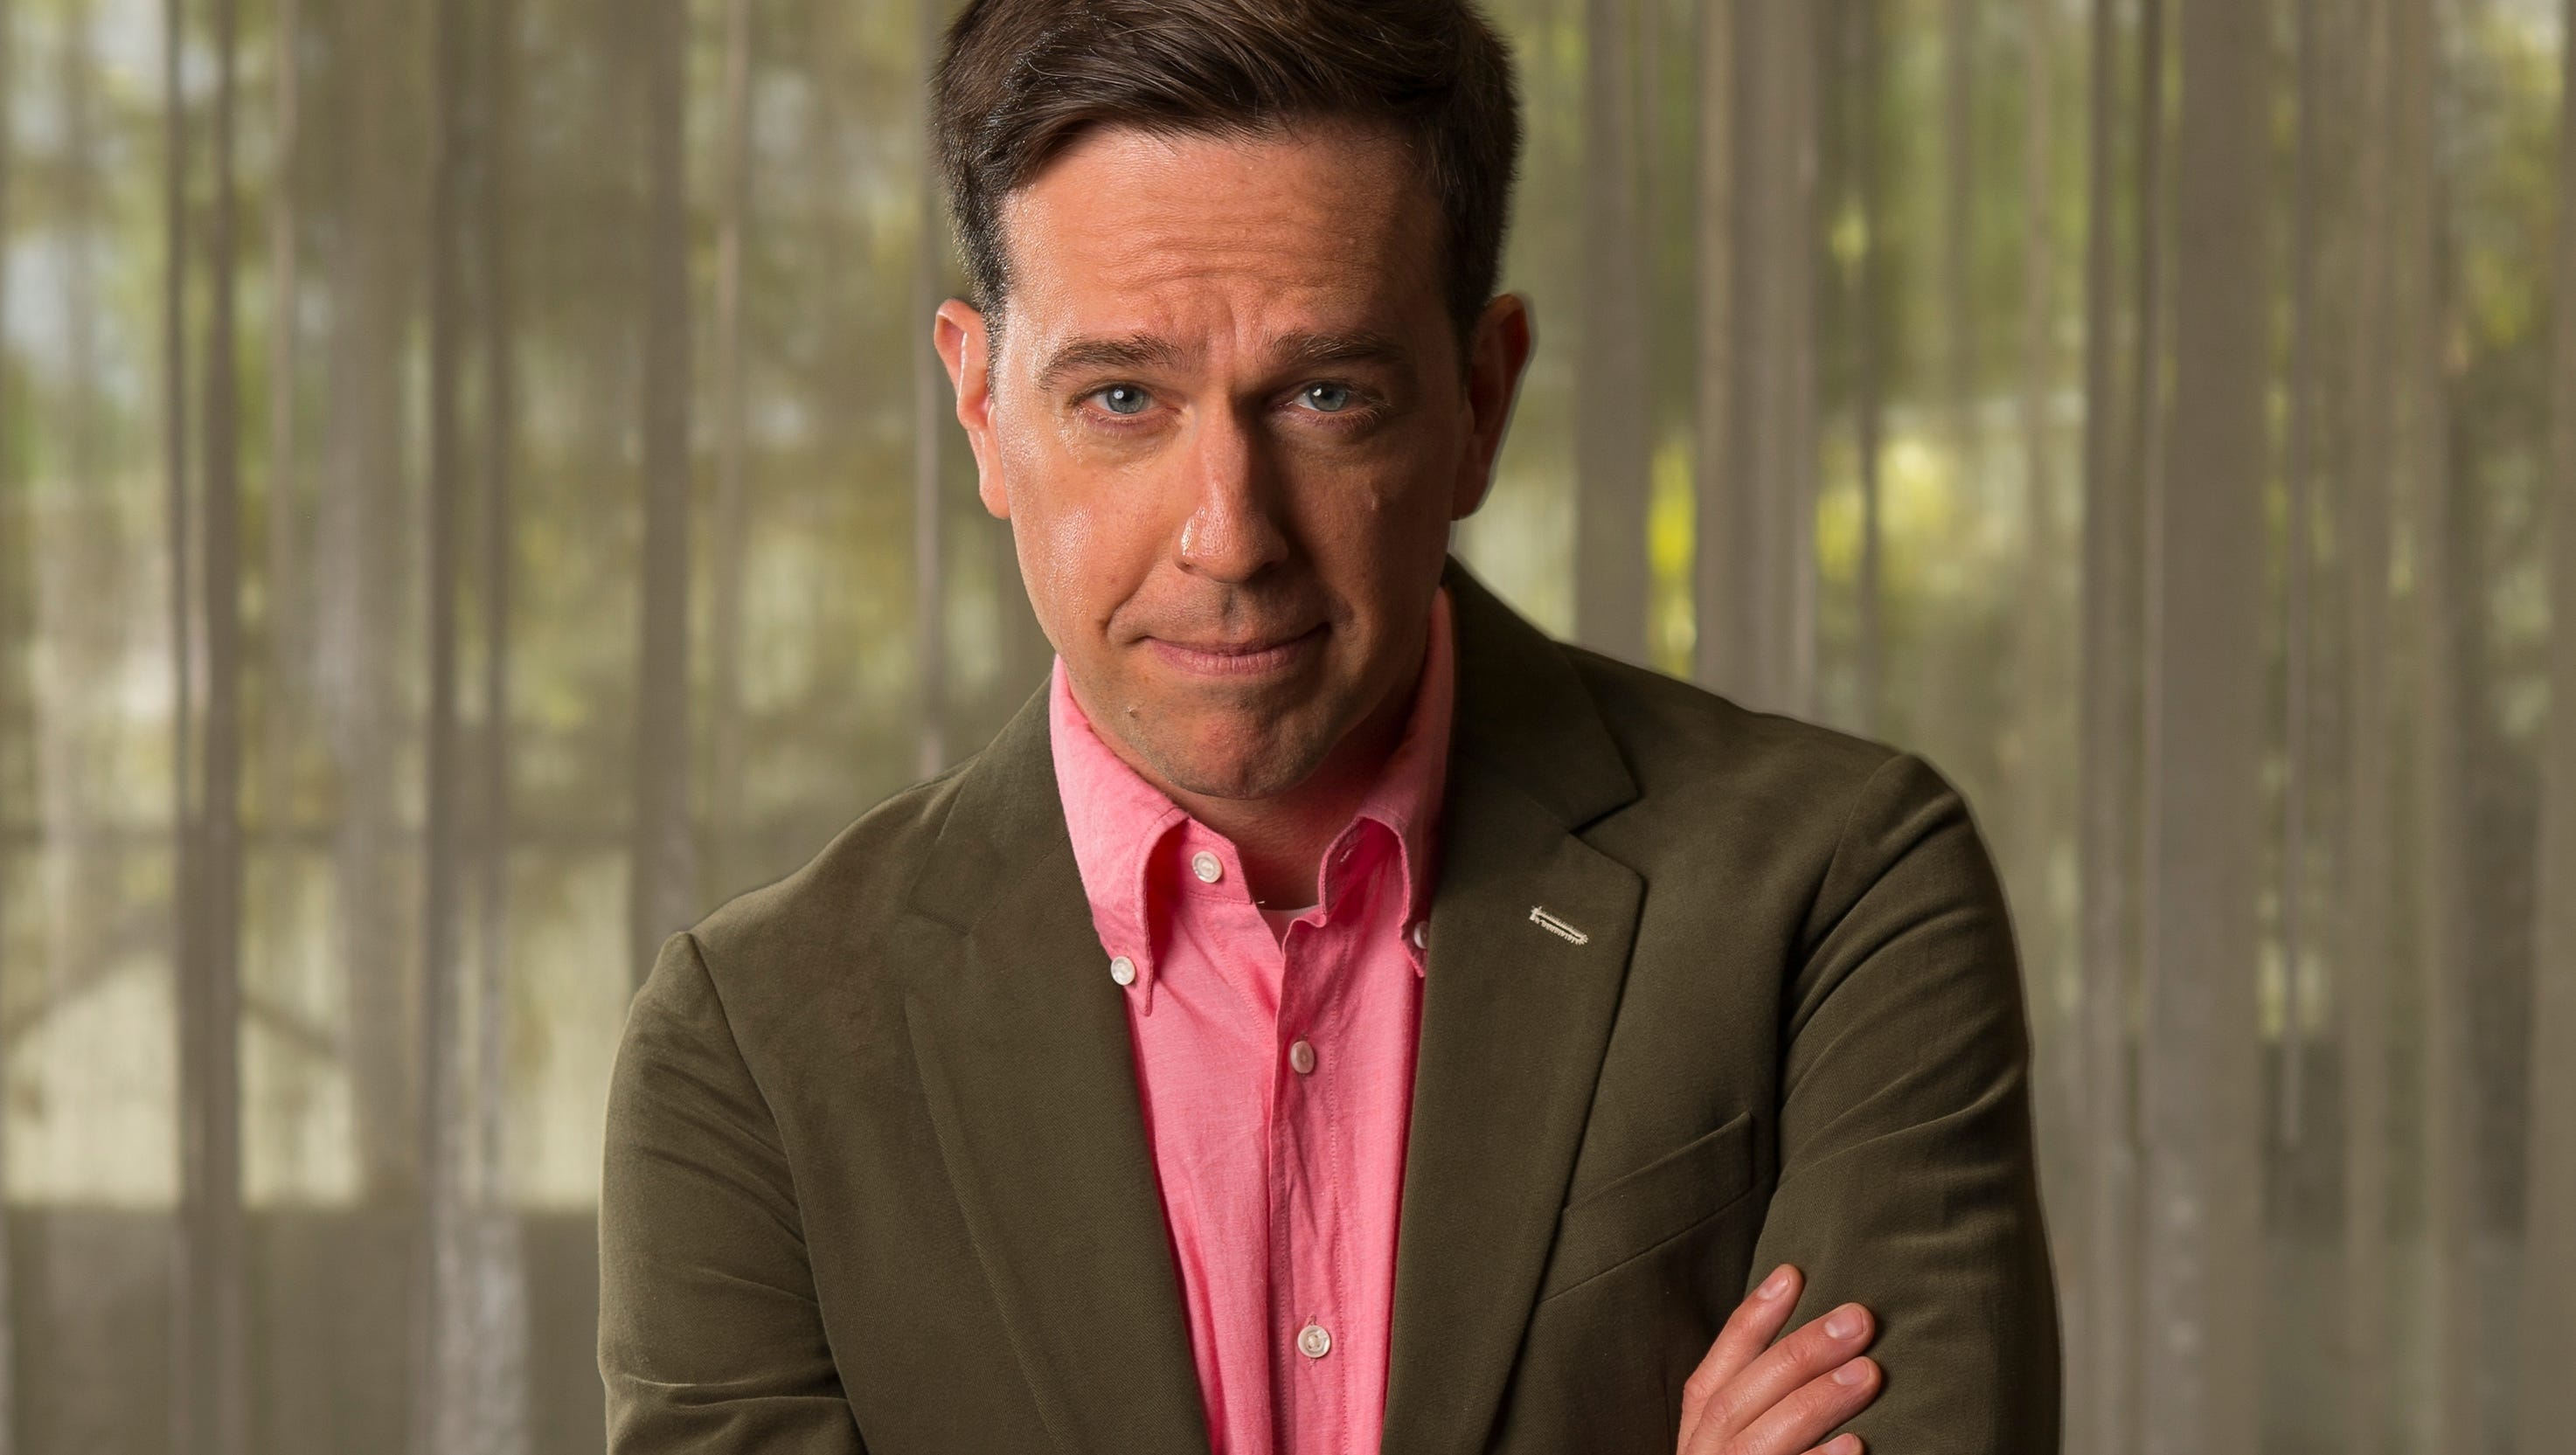 New 'Vacation' is thrill ride for Ed Helms